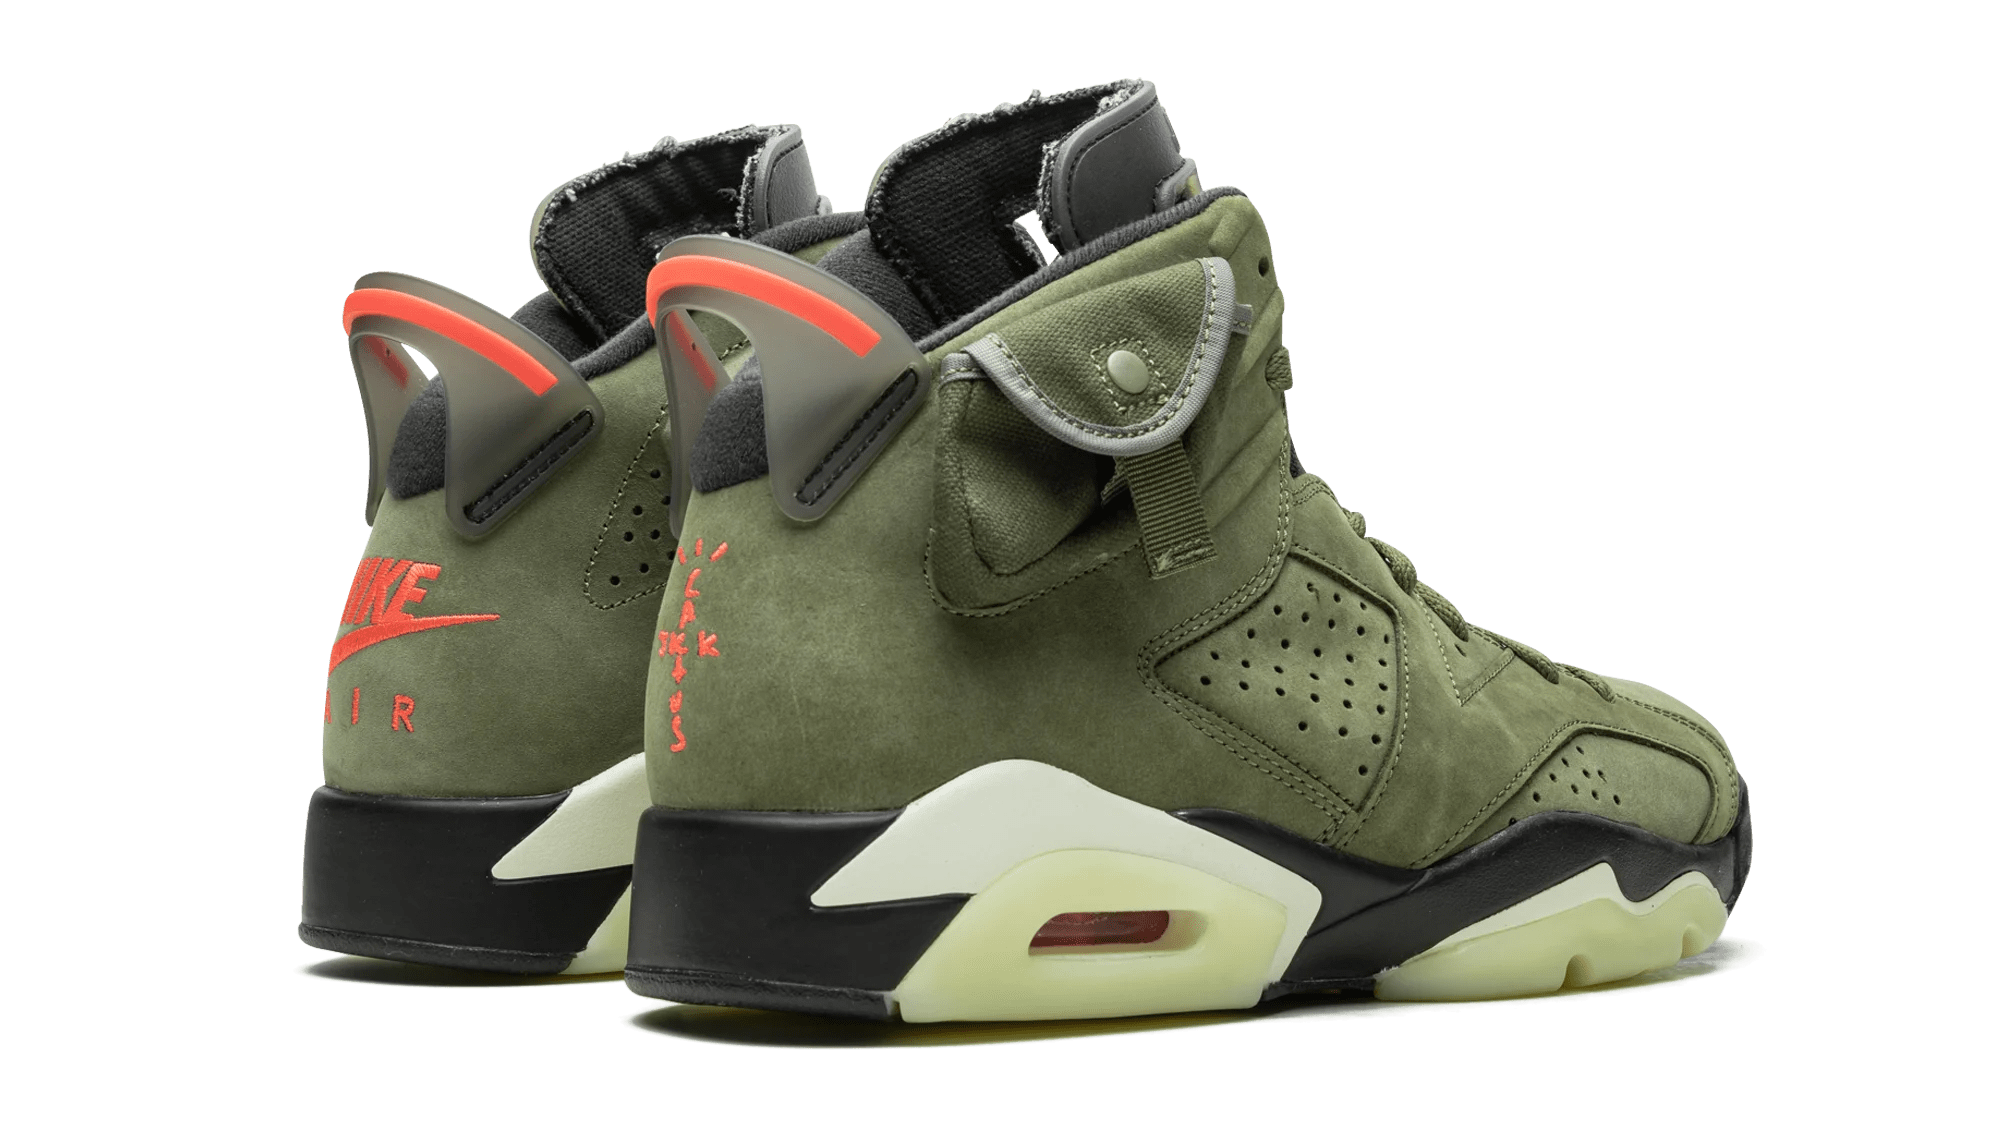 Travis Scott x Air Jordan 6 'Medium Olive/Black/Sail/University Red' CN1084-200 (Heel)